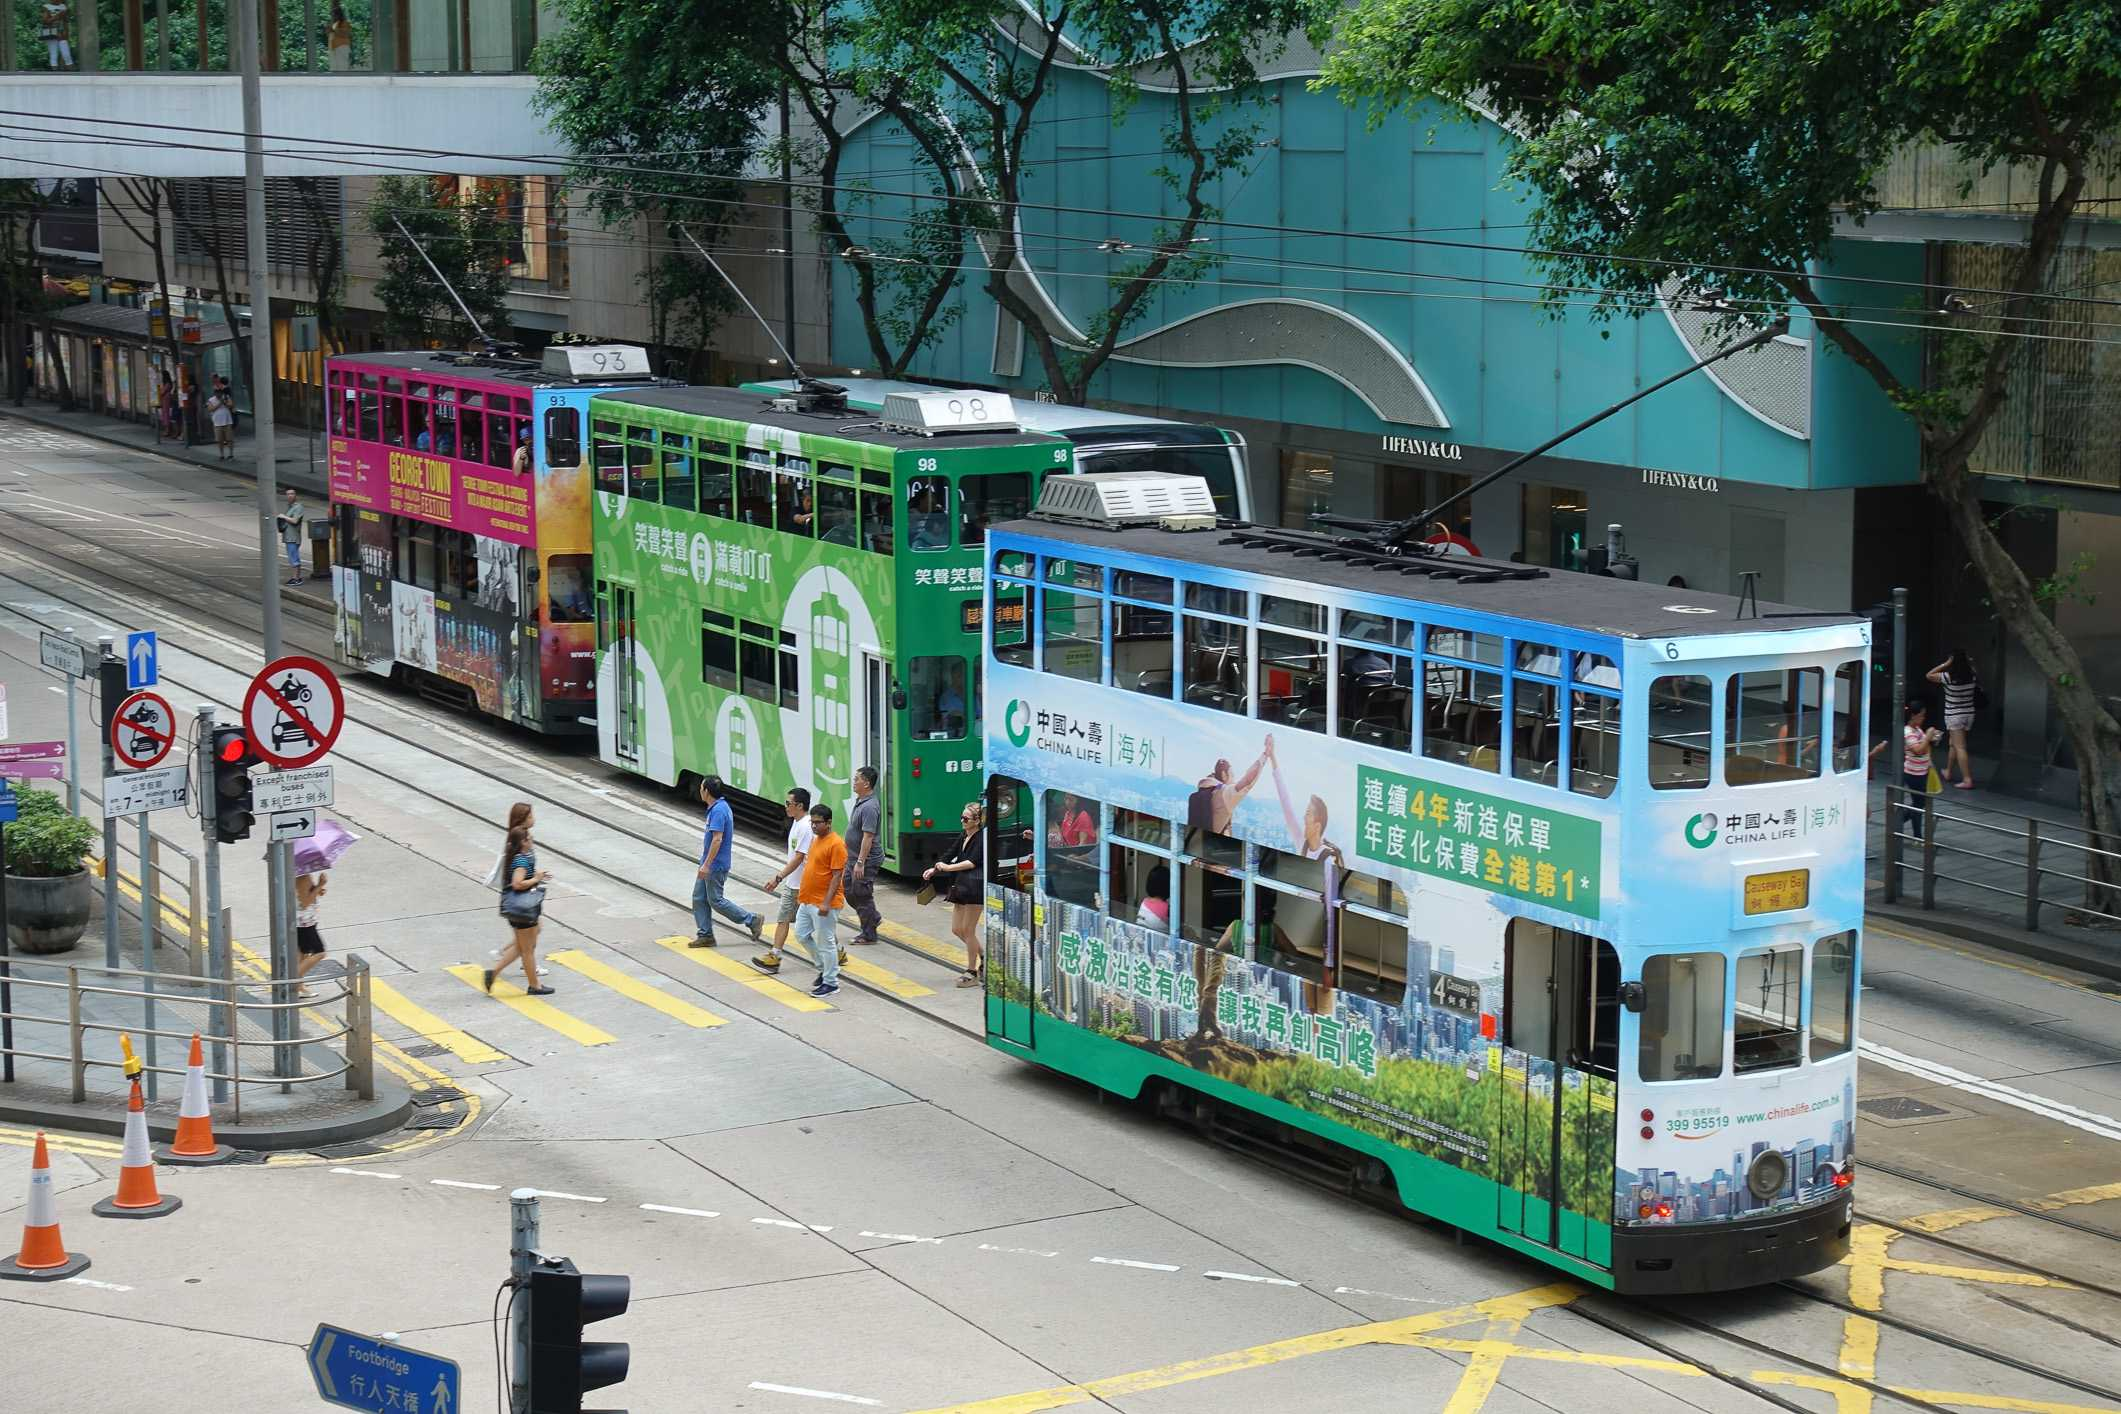 Hong Kong's double-decker trams